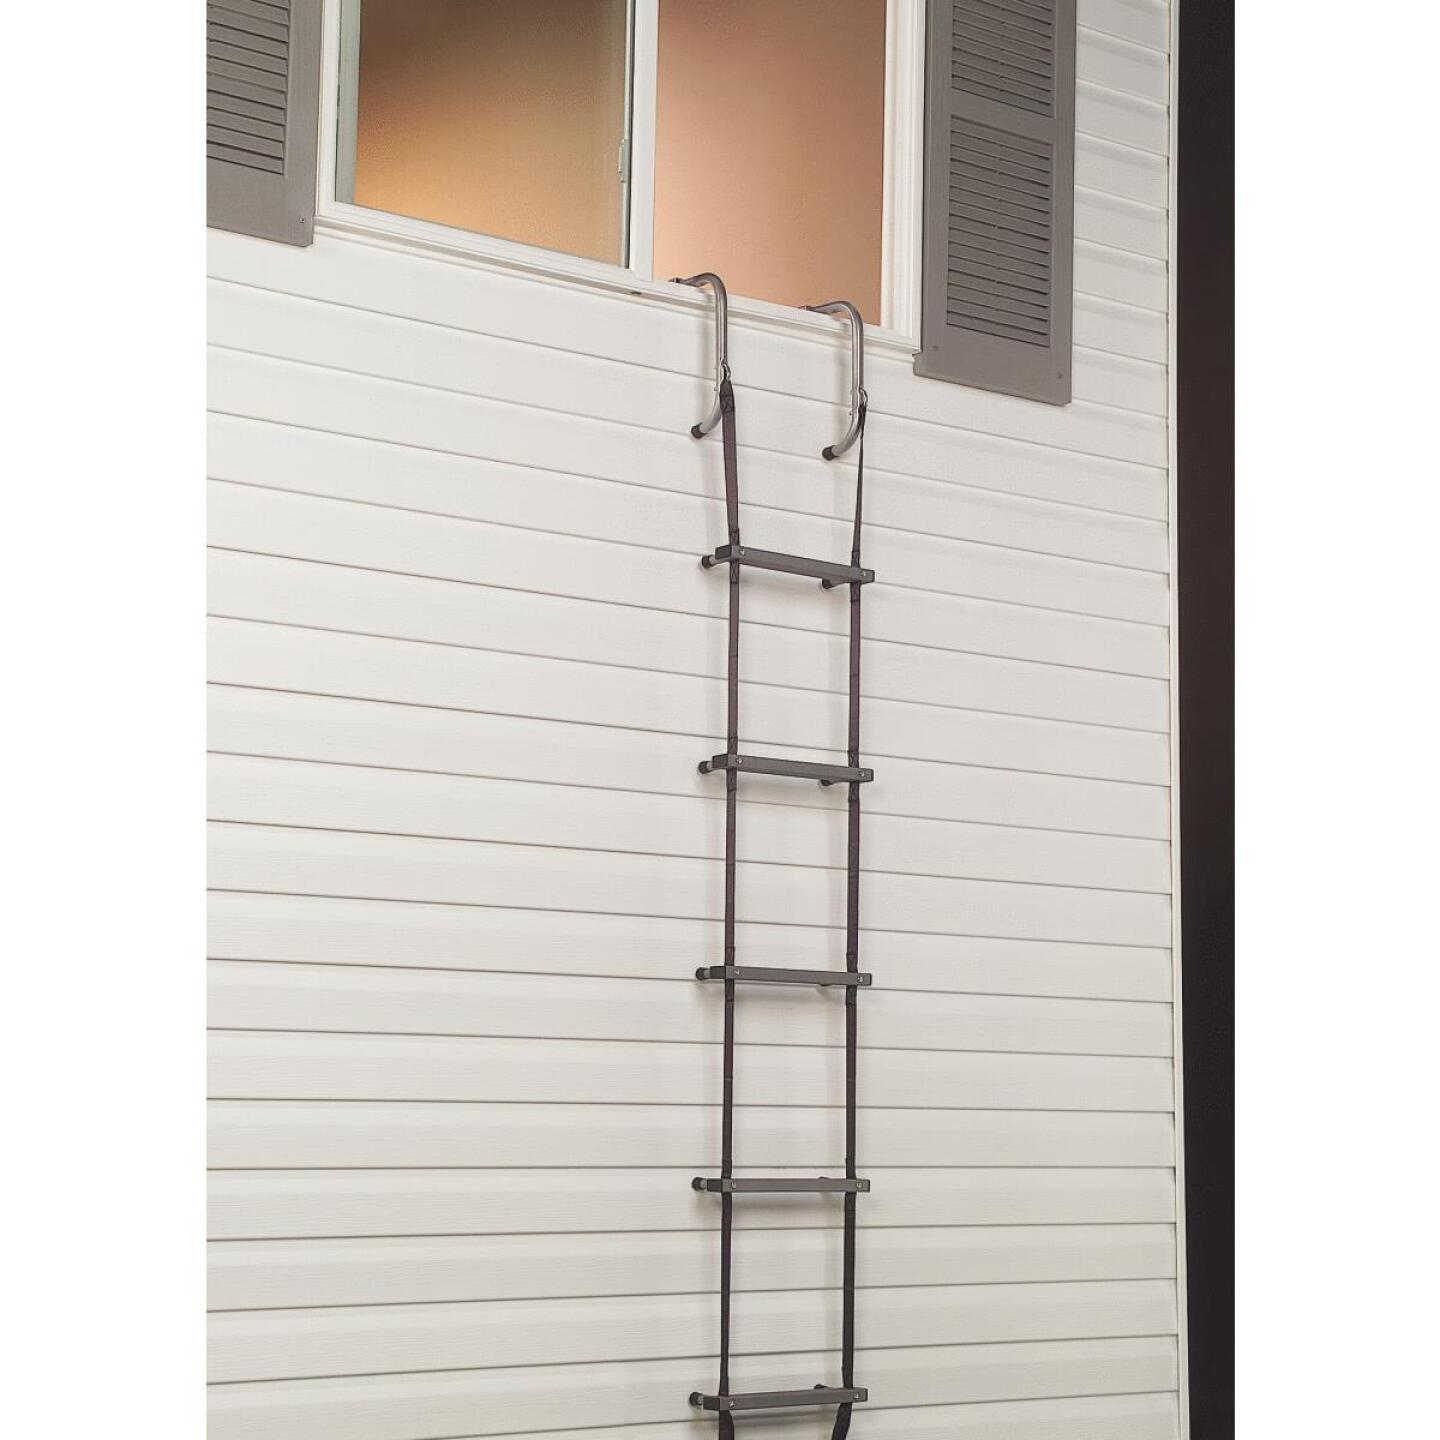 First Alert 14 Ft. Steel Fire Escape Ladder Image 4